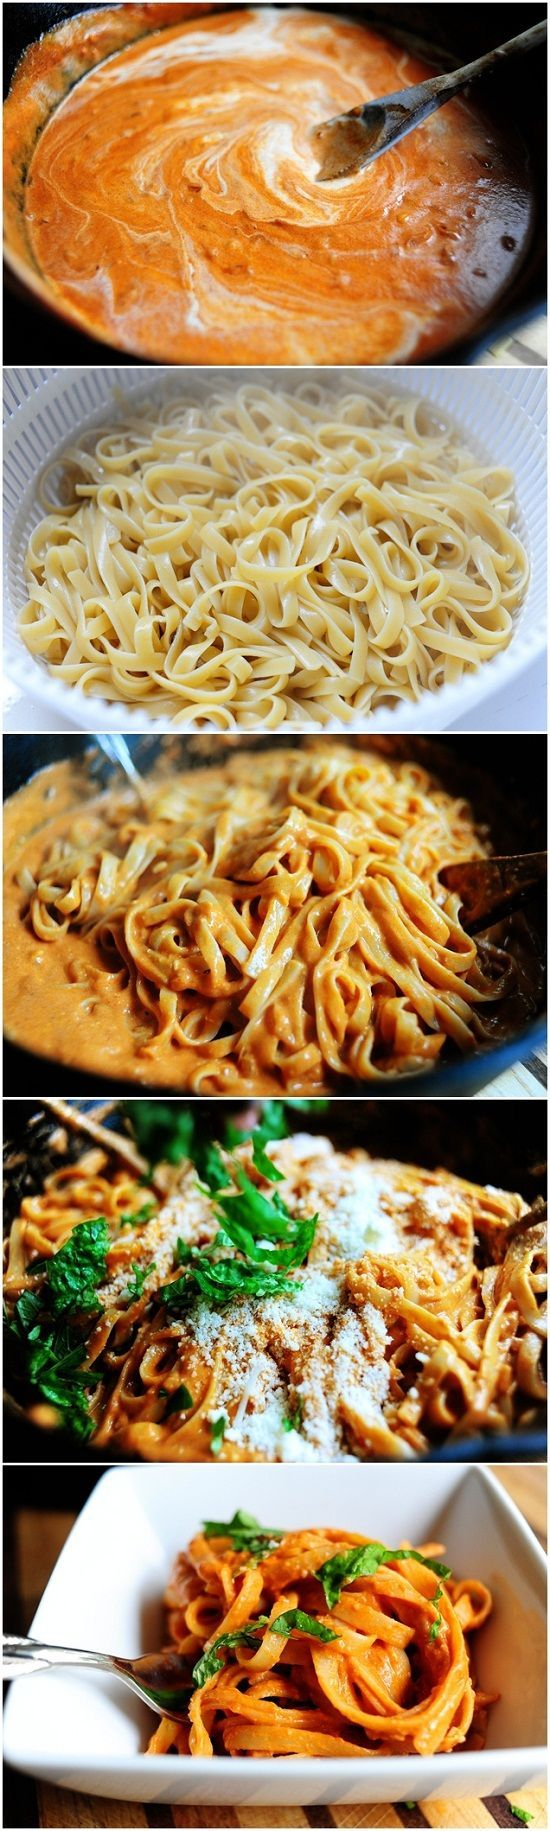 Pasta with Tomato Cream Sauce. Since I need to watch my cholesterol I will use fat free half/half. Whole wheat pasta.